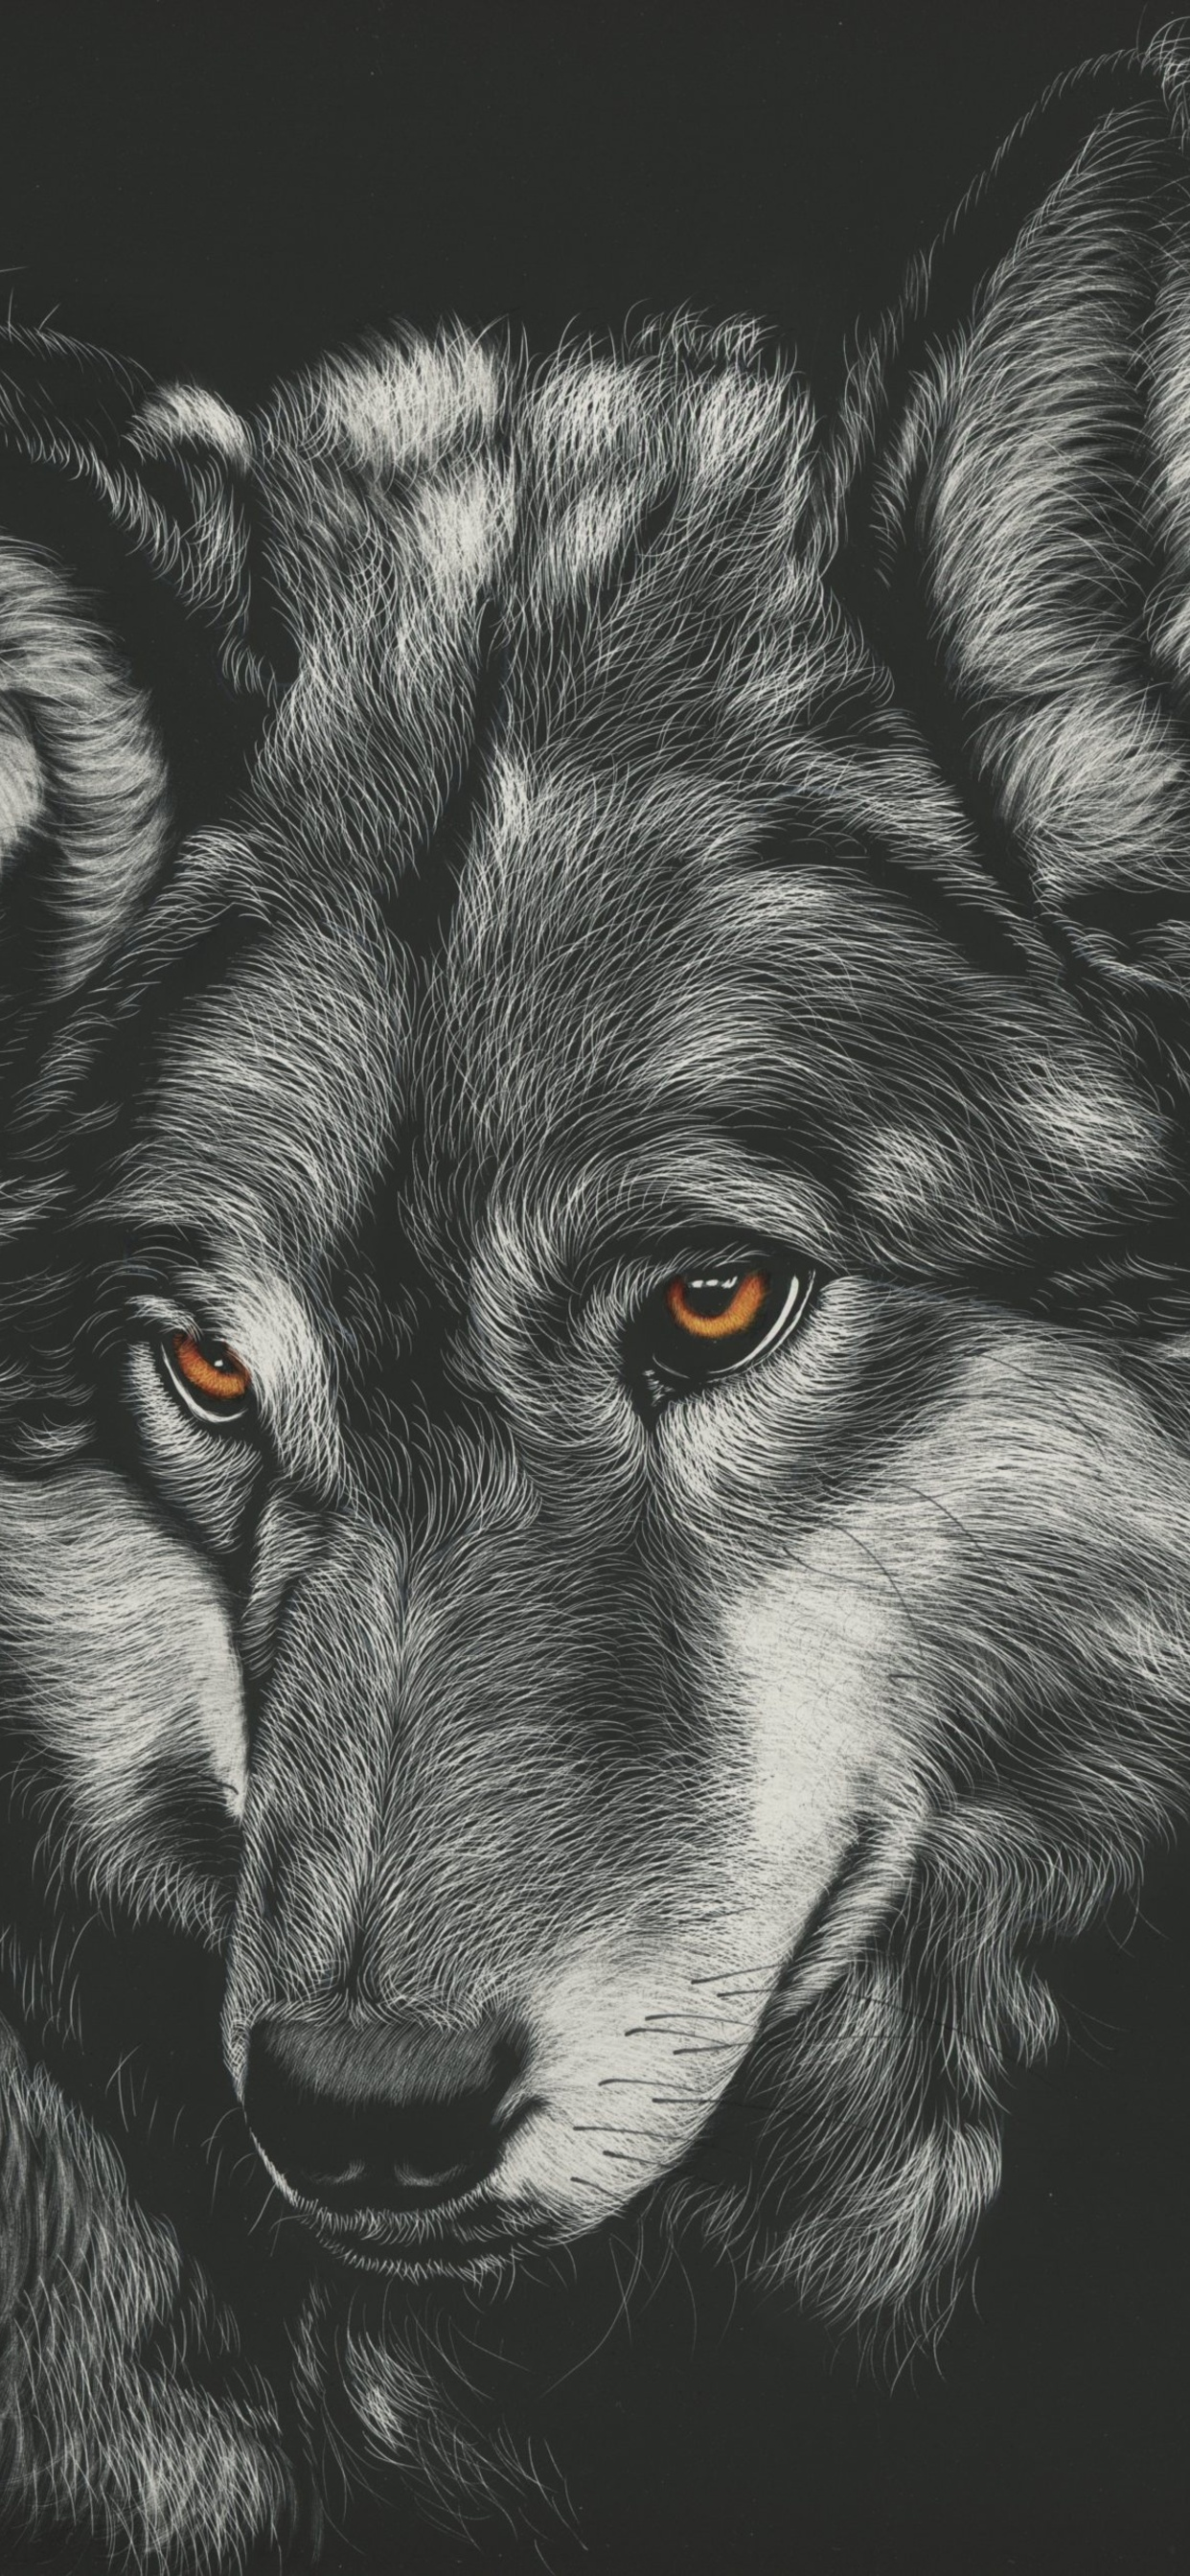 1242x2688 Wolf Painting 4k Iphone Xs Max Hd 4k Wallpapers